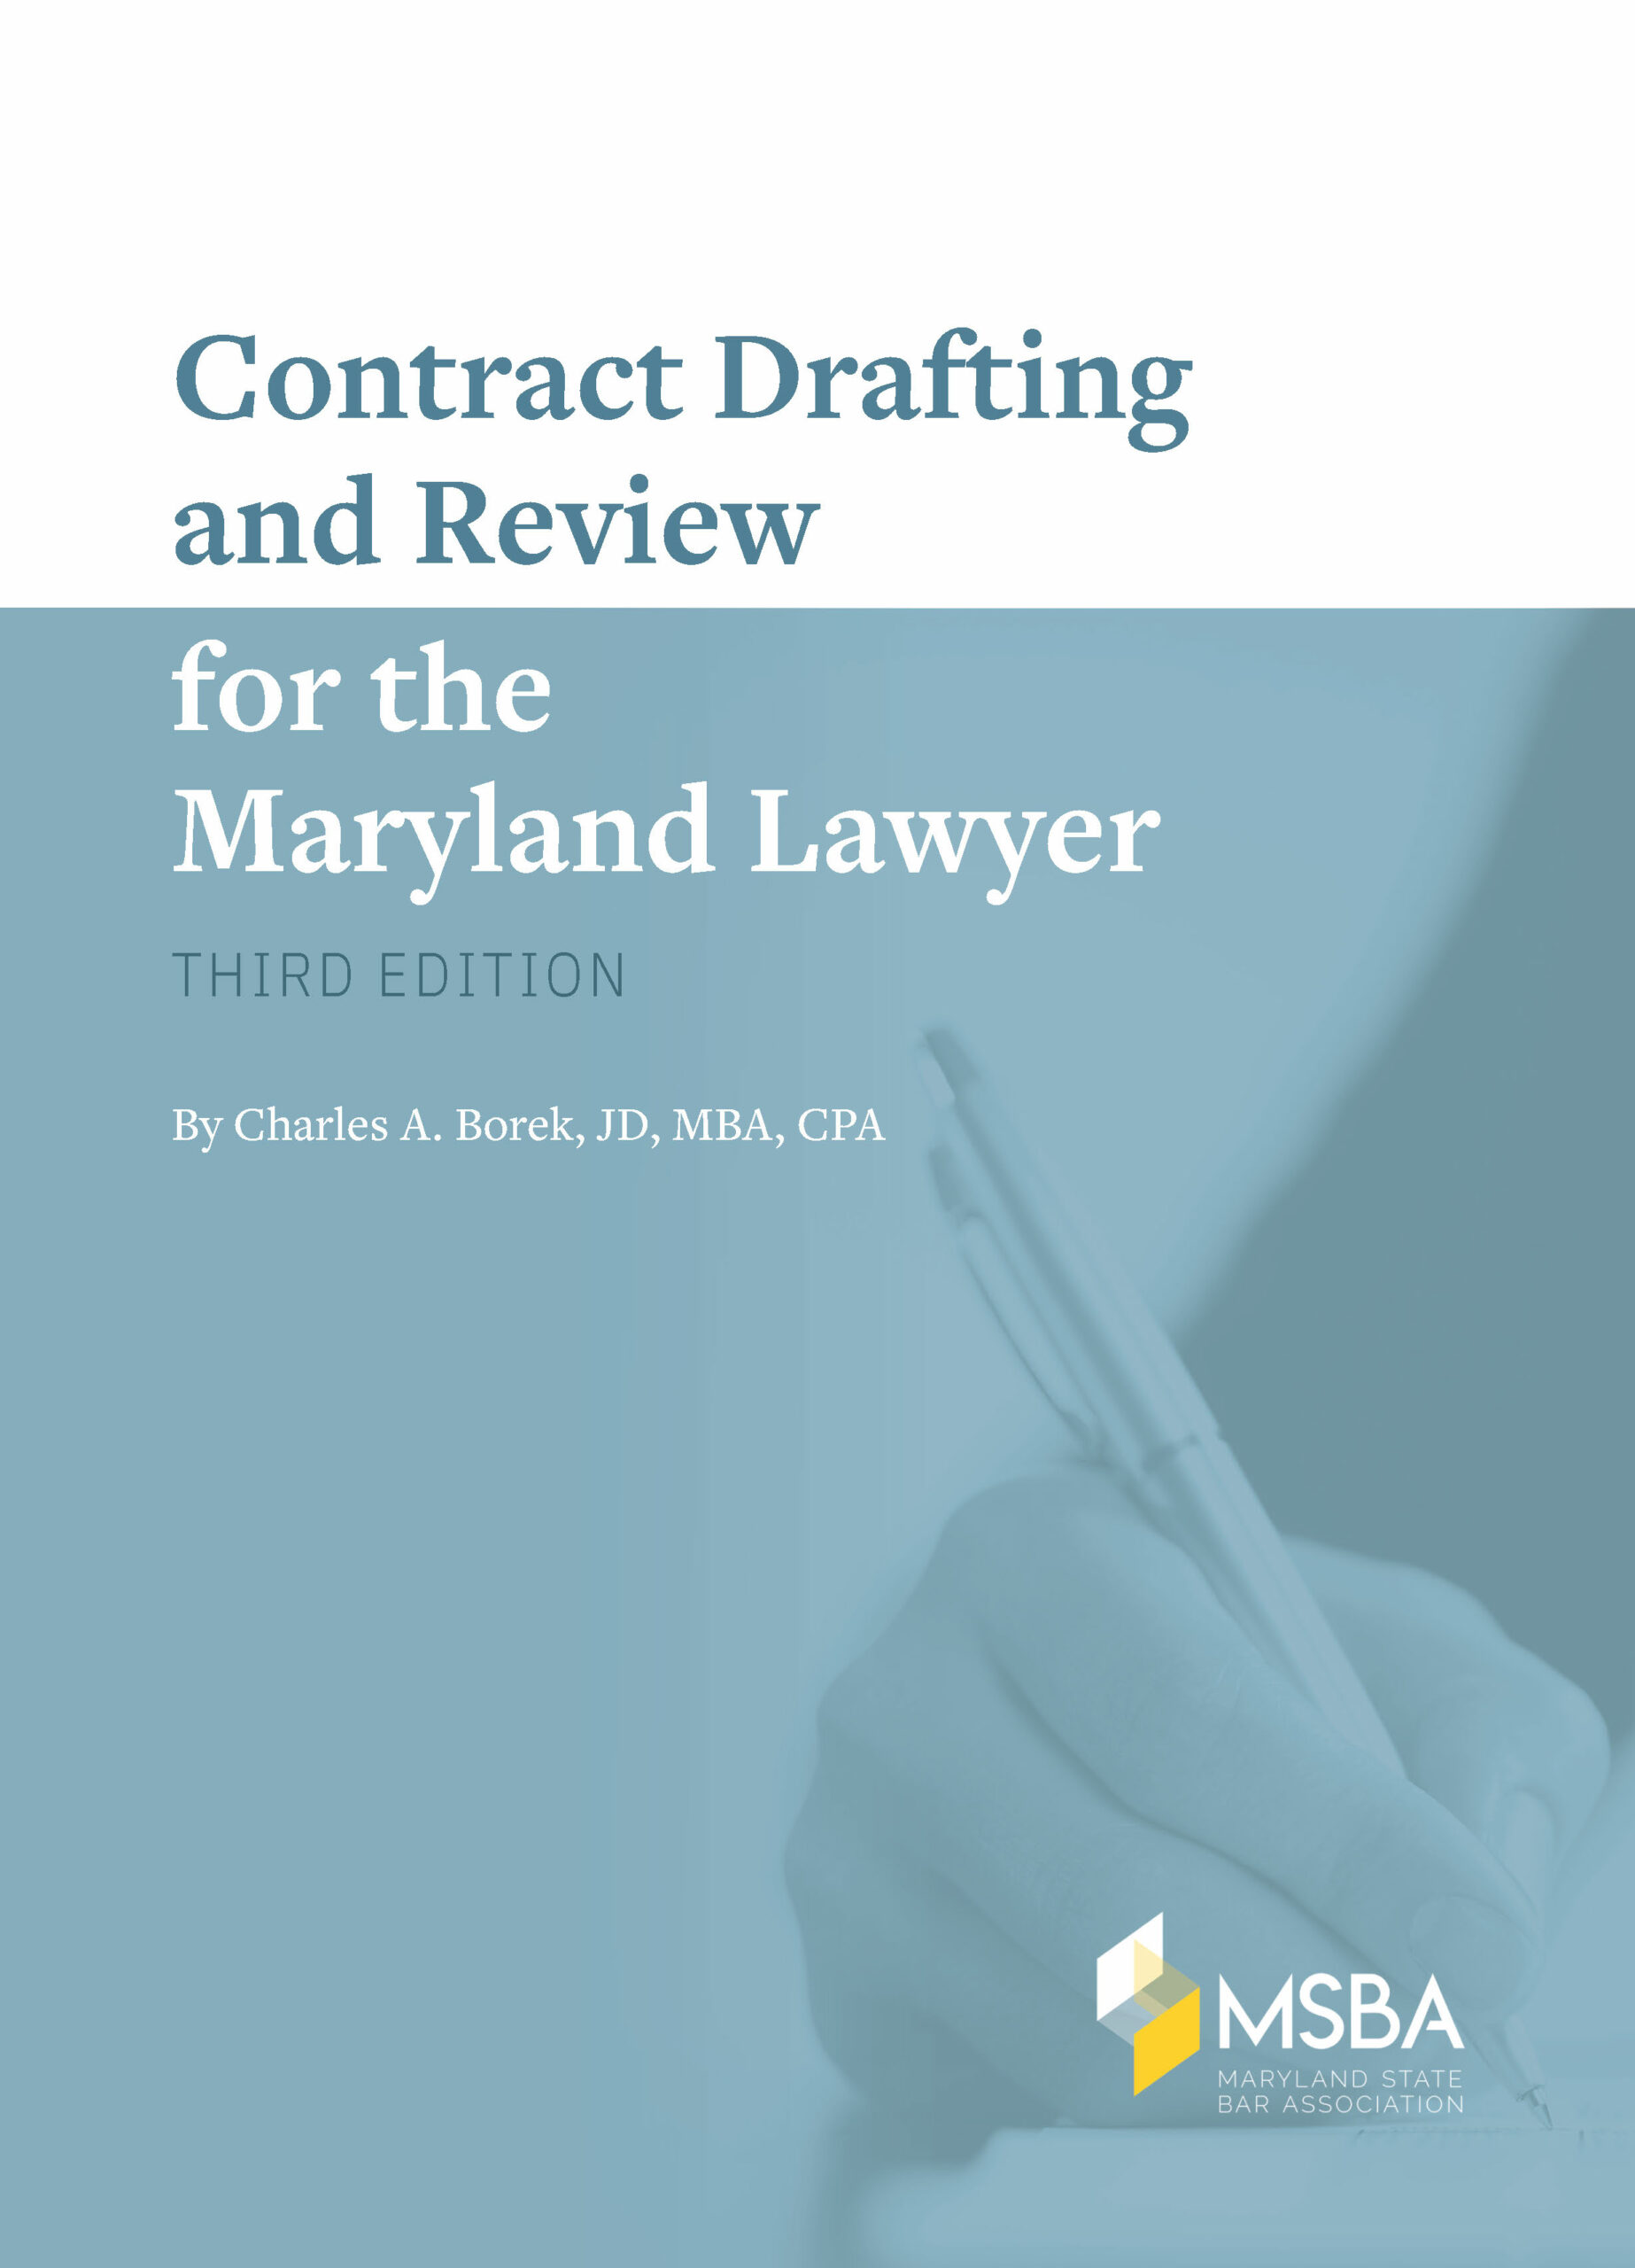 Contract Drafting and Review for the Maryland Lawyer, 3rd Edition